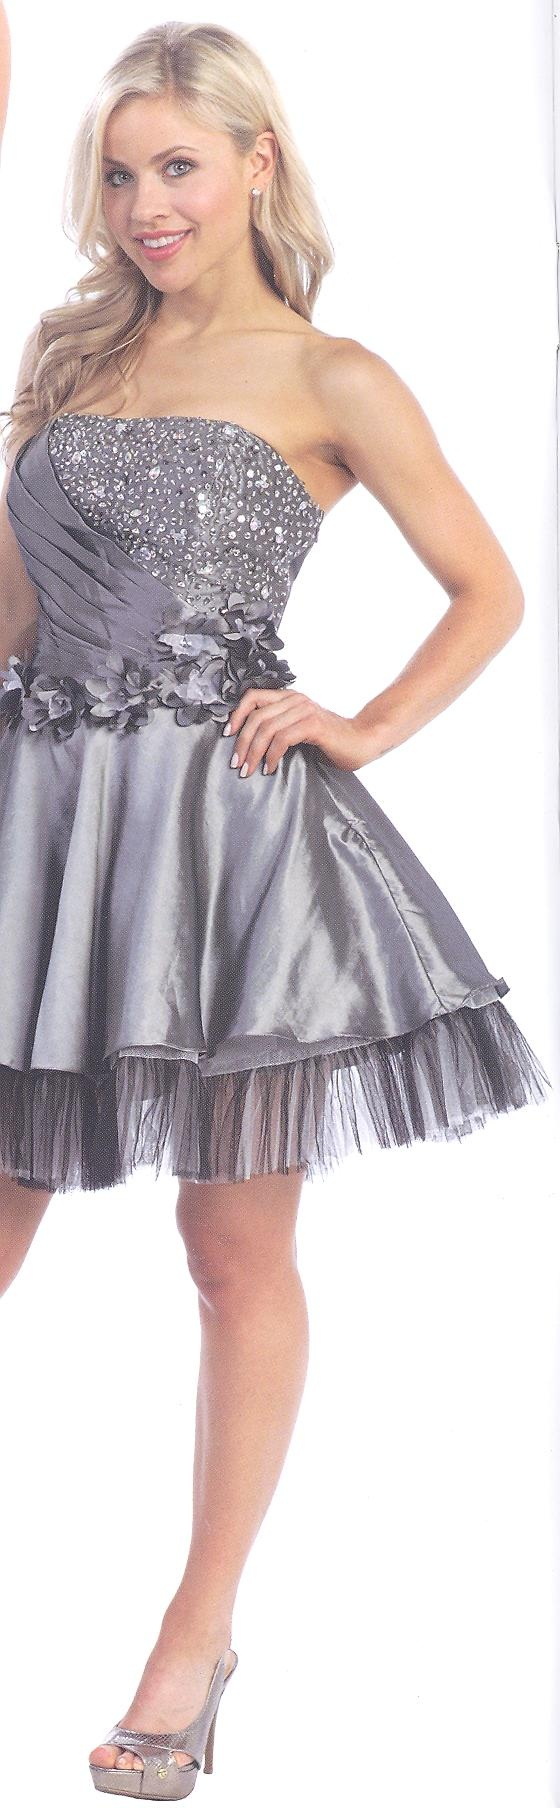 Find Your Flair for fun in this short dramatic dress with partially pleated bodice embellished with bead work and large stones, lace up back for flexible fit,soft floral accents at waist line leading to the solid shimmer skirt and peek-a-boo tulle hemline for dancing the night away!  $118.00